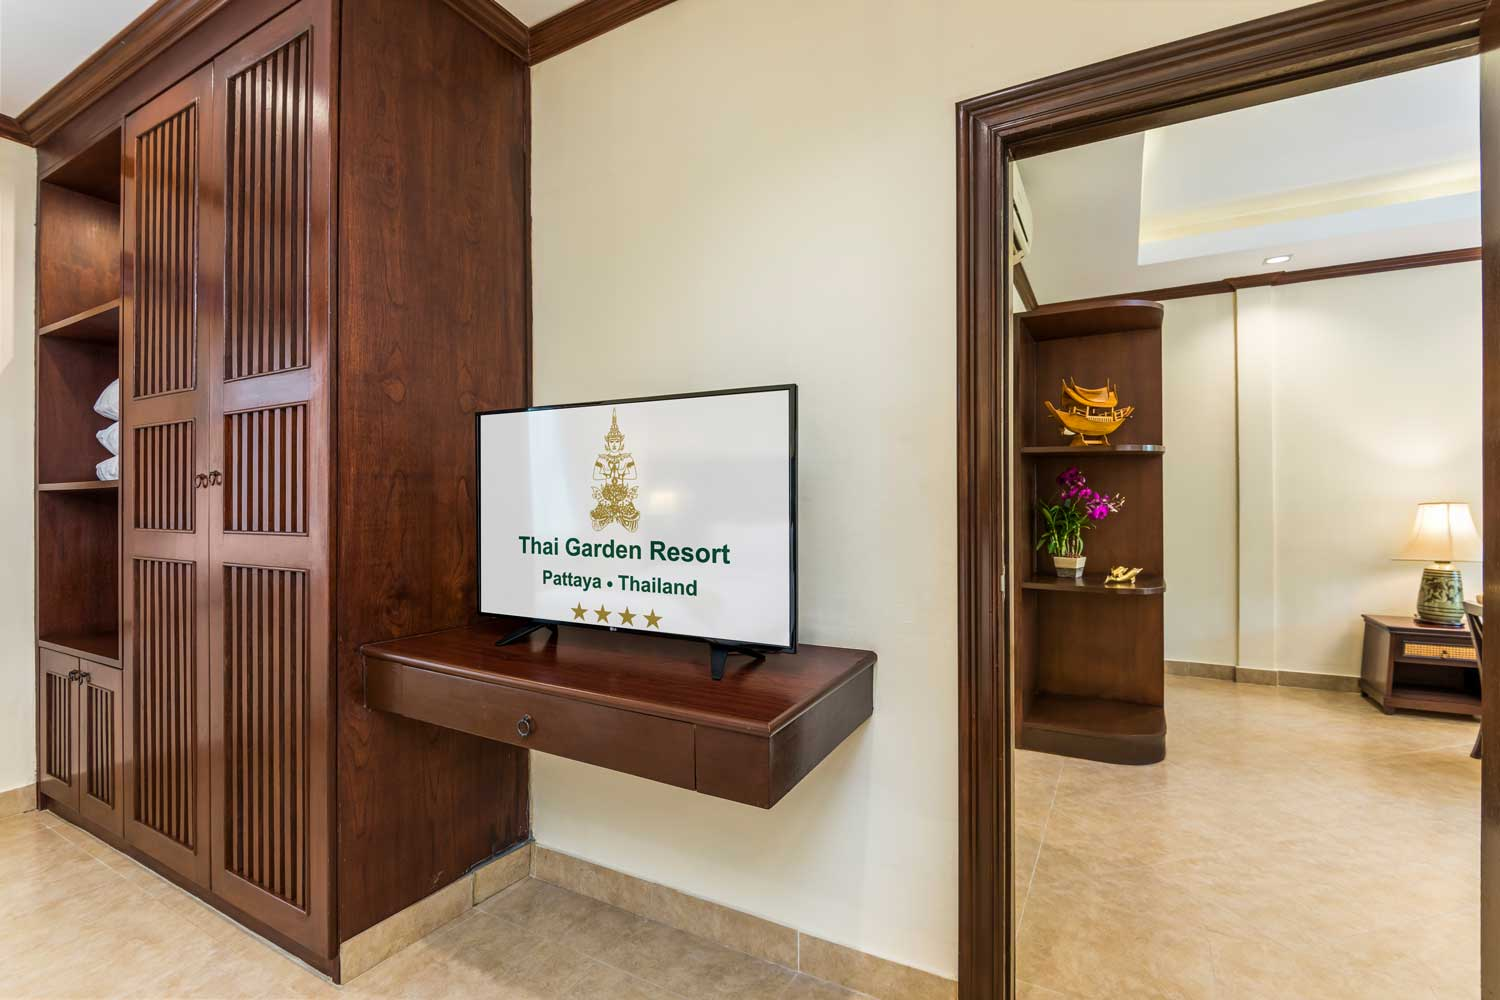 TV of a One-Bedroom apartment hotel room with a garden view of the Thai Garden Resort in Pattaya, Thailand